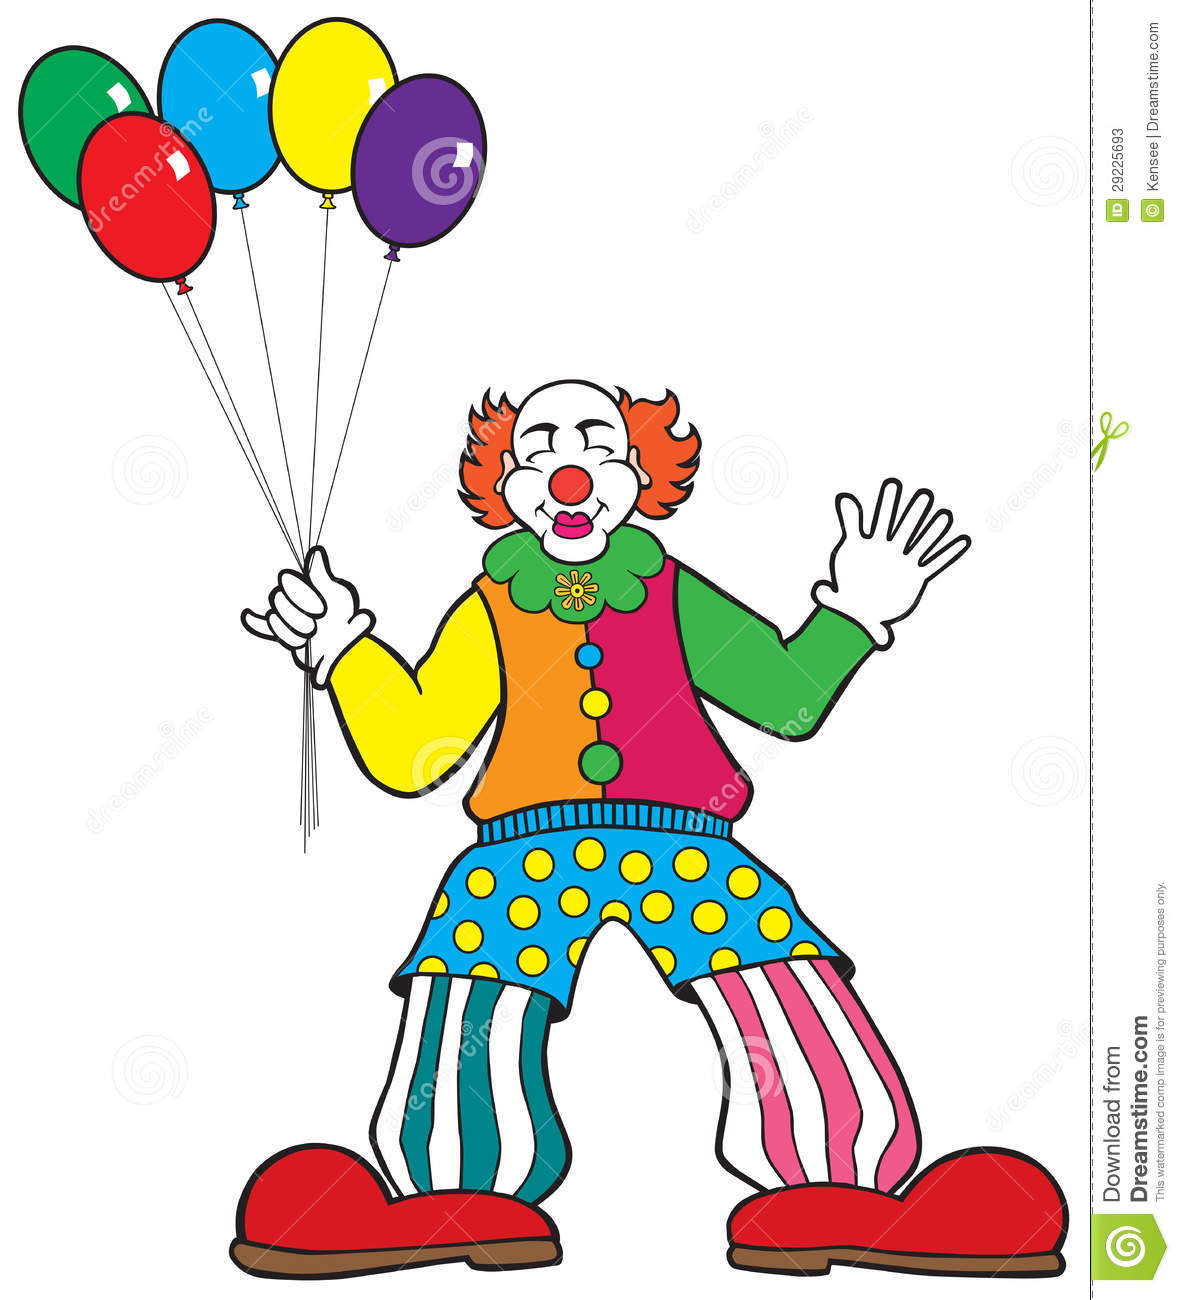 clip art clowns with balloons - photo #40